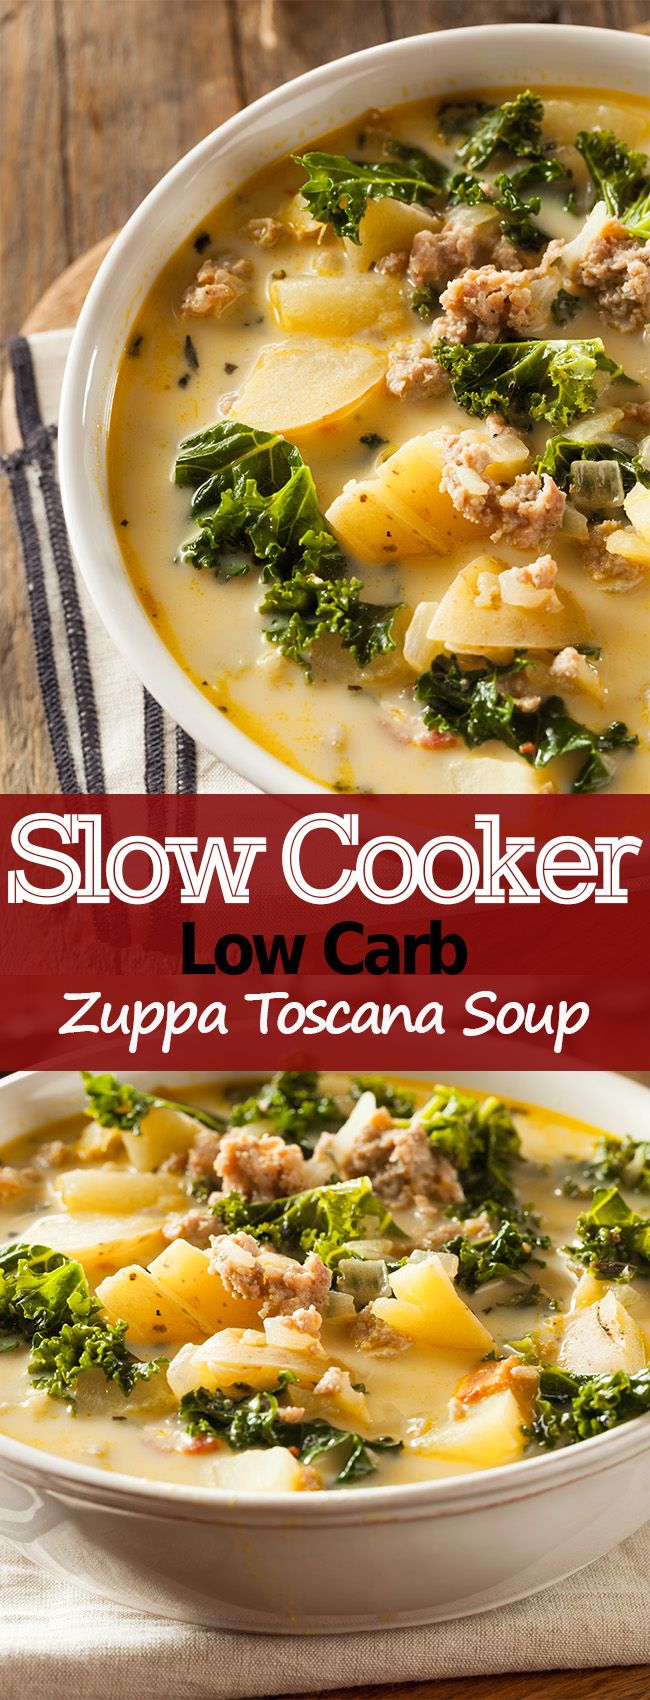 Diet Recipe Slow Cooker Low Carb Zuppa Toscana Soup – Fitness Diet Recipes